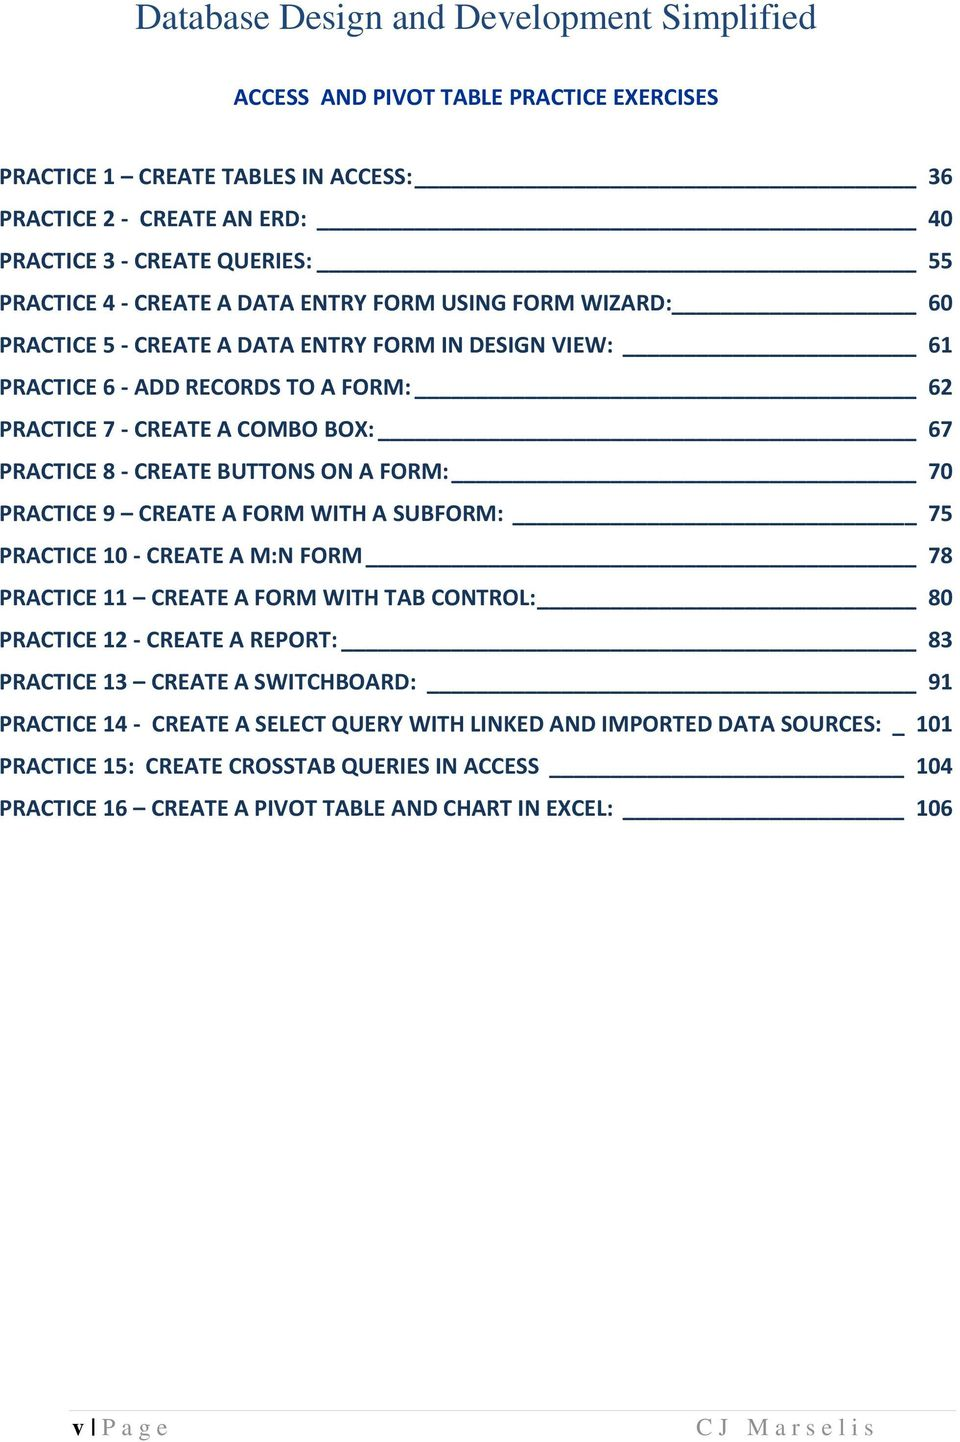 Database Design and Development Simplified - PDF